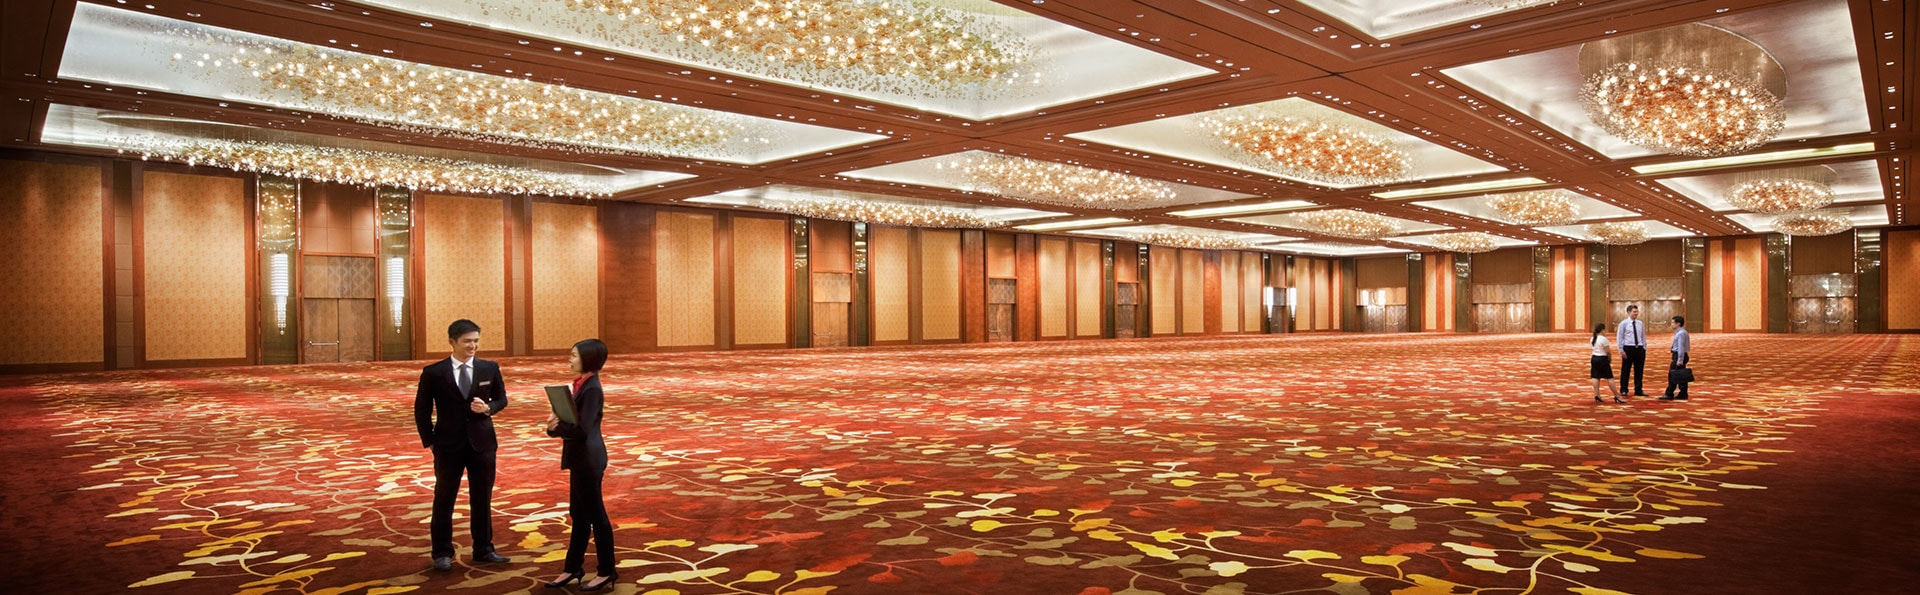 Sands Expo And Convention Center Floor Plan Meze Blog